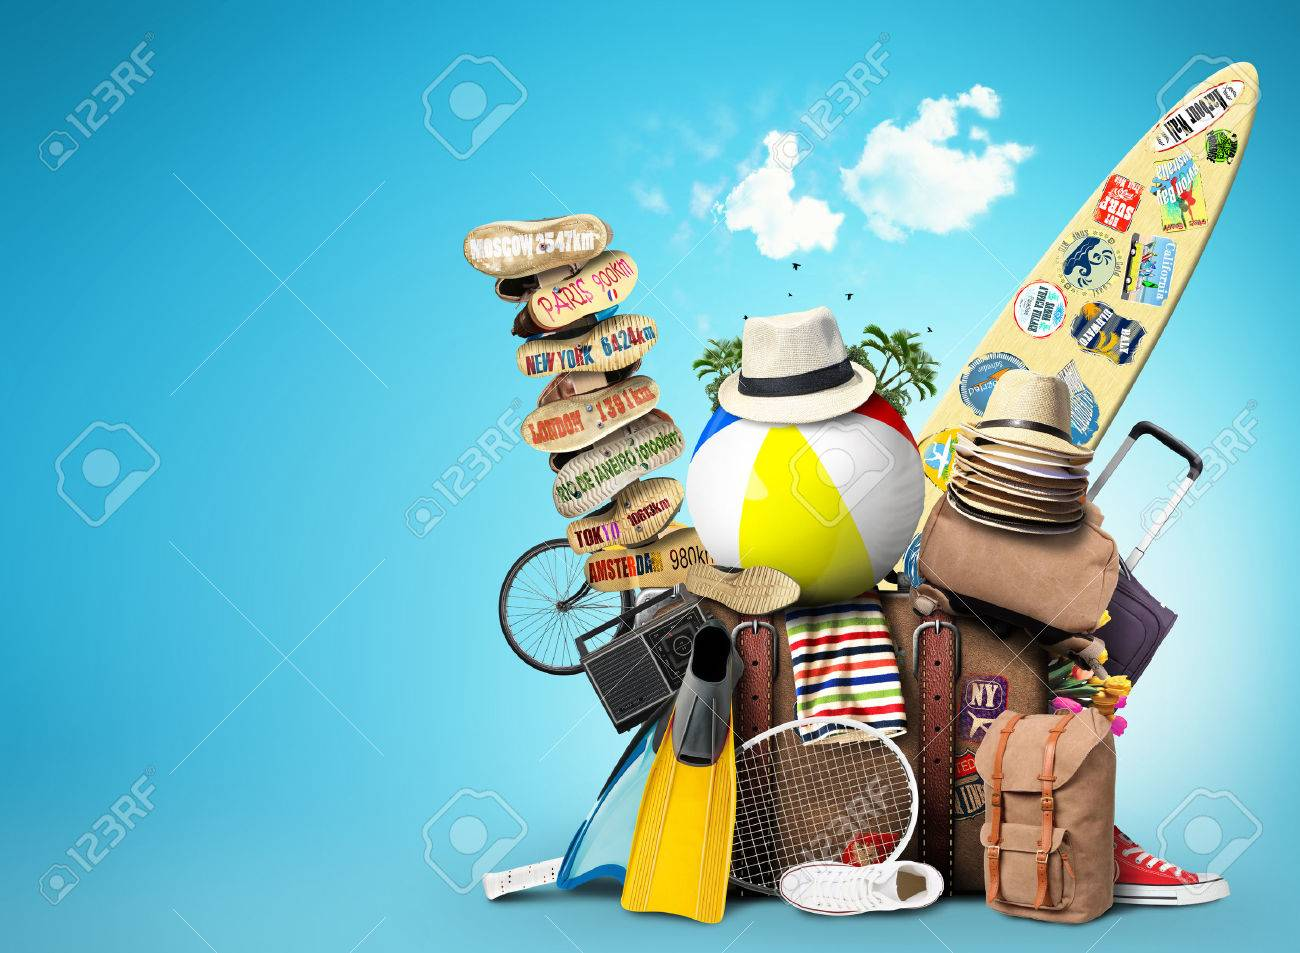 Luggage, goods for holidays, leisure and travel - 43133444